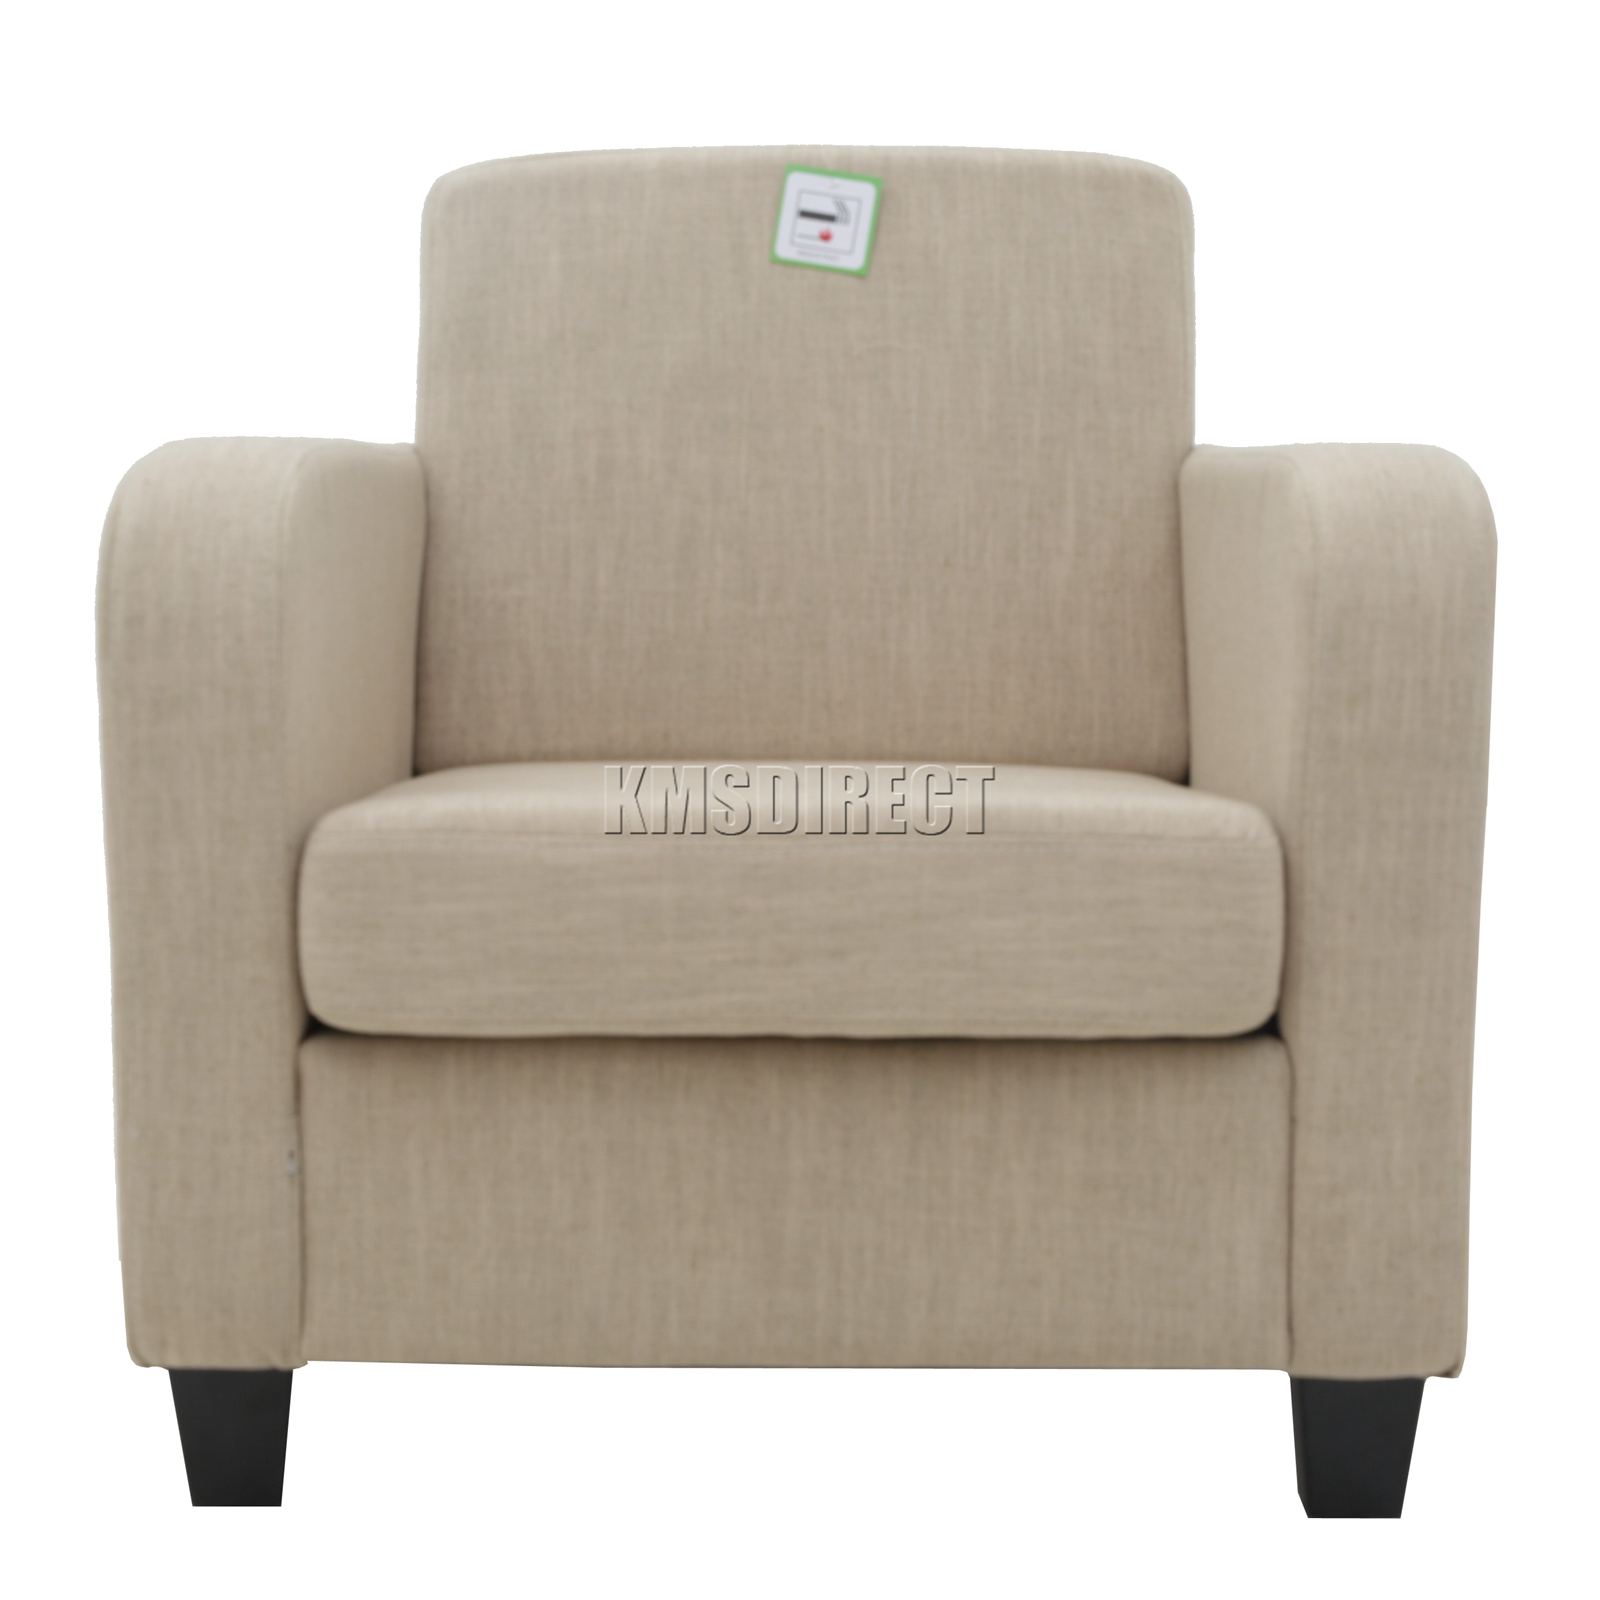 Foxhunter cream linen fabric tub chair armchair dining - Contemporary chairs for living room uk ...